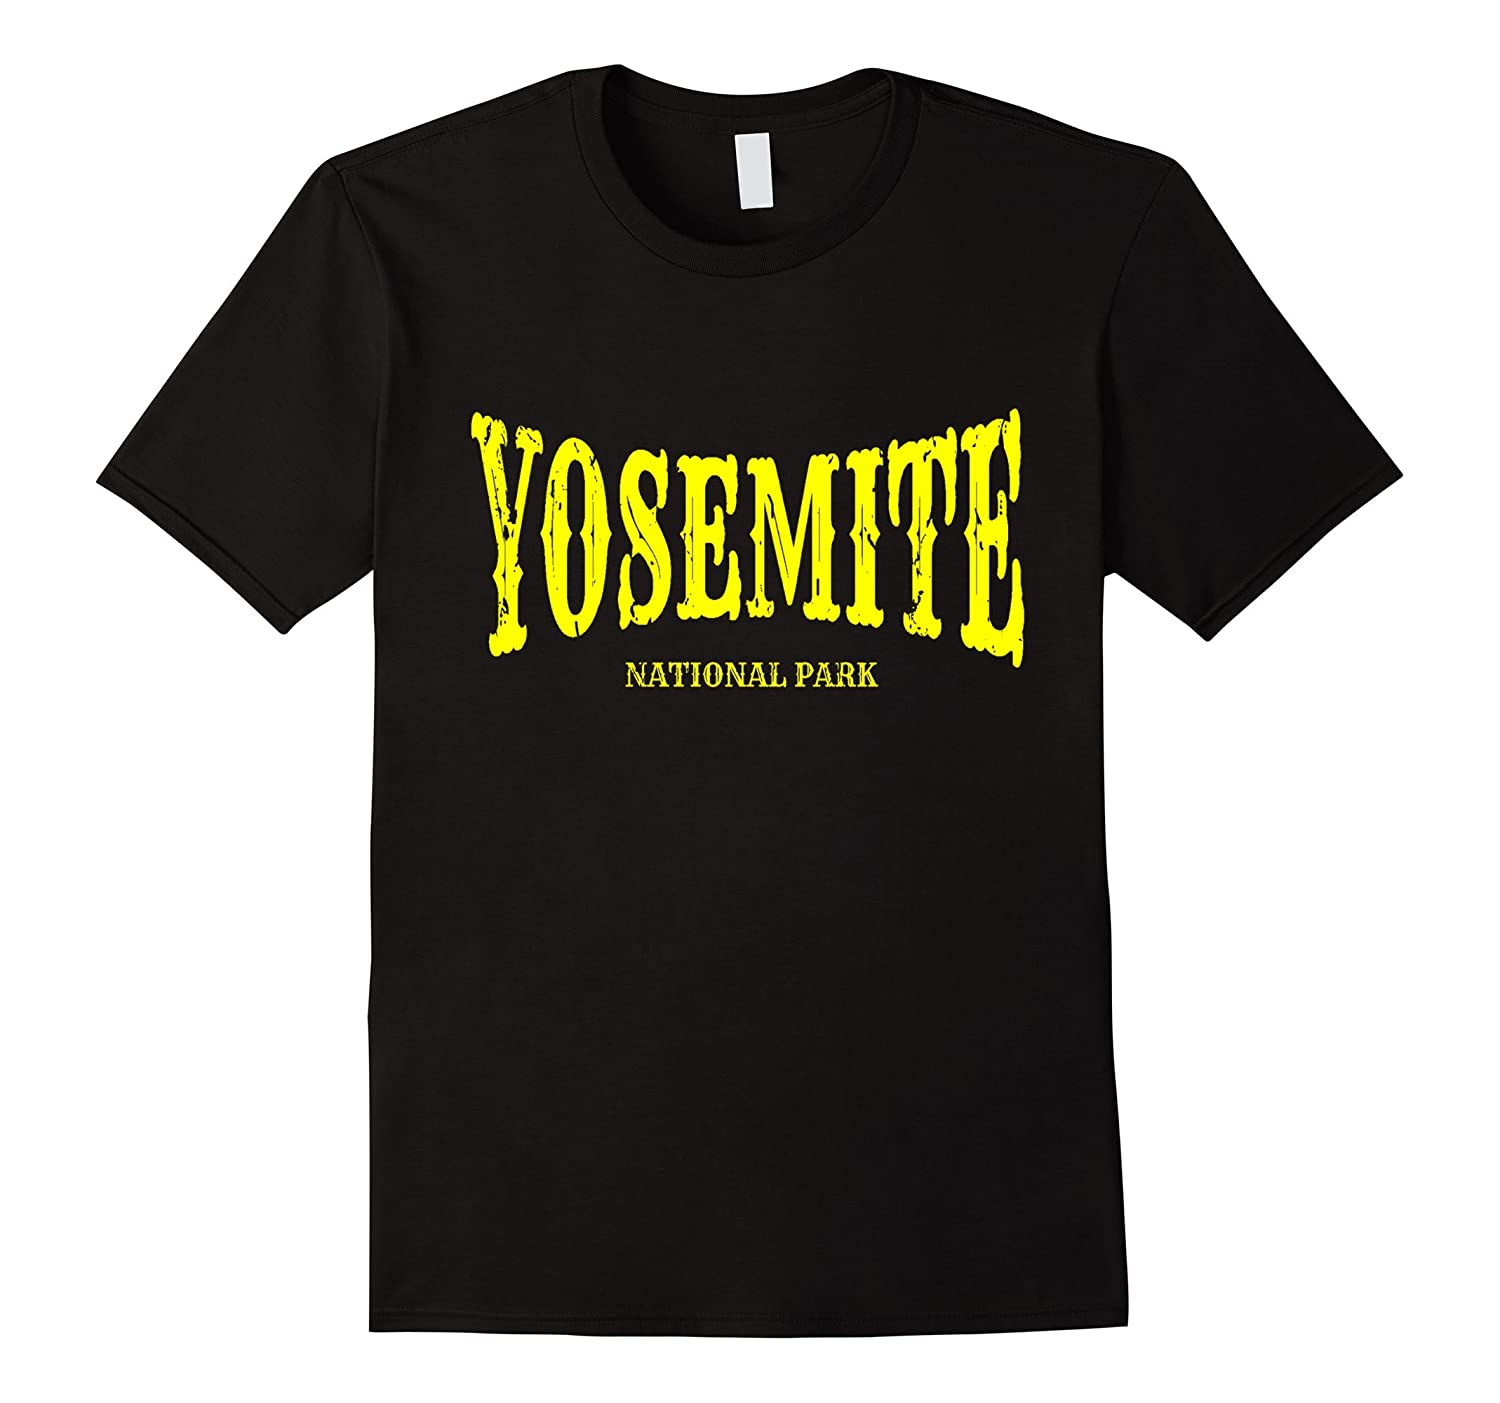 Yosemite National Park T-Shirt with Yellow Text-TH